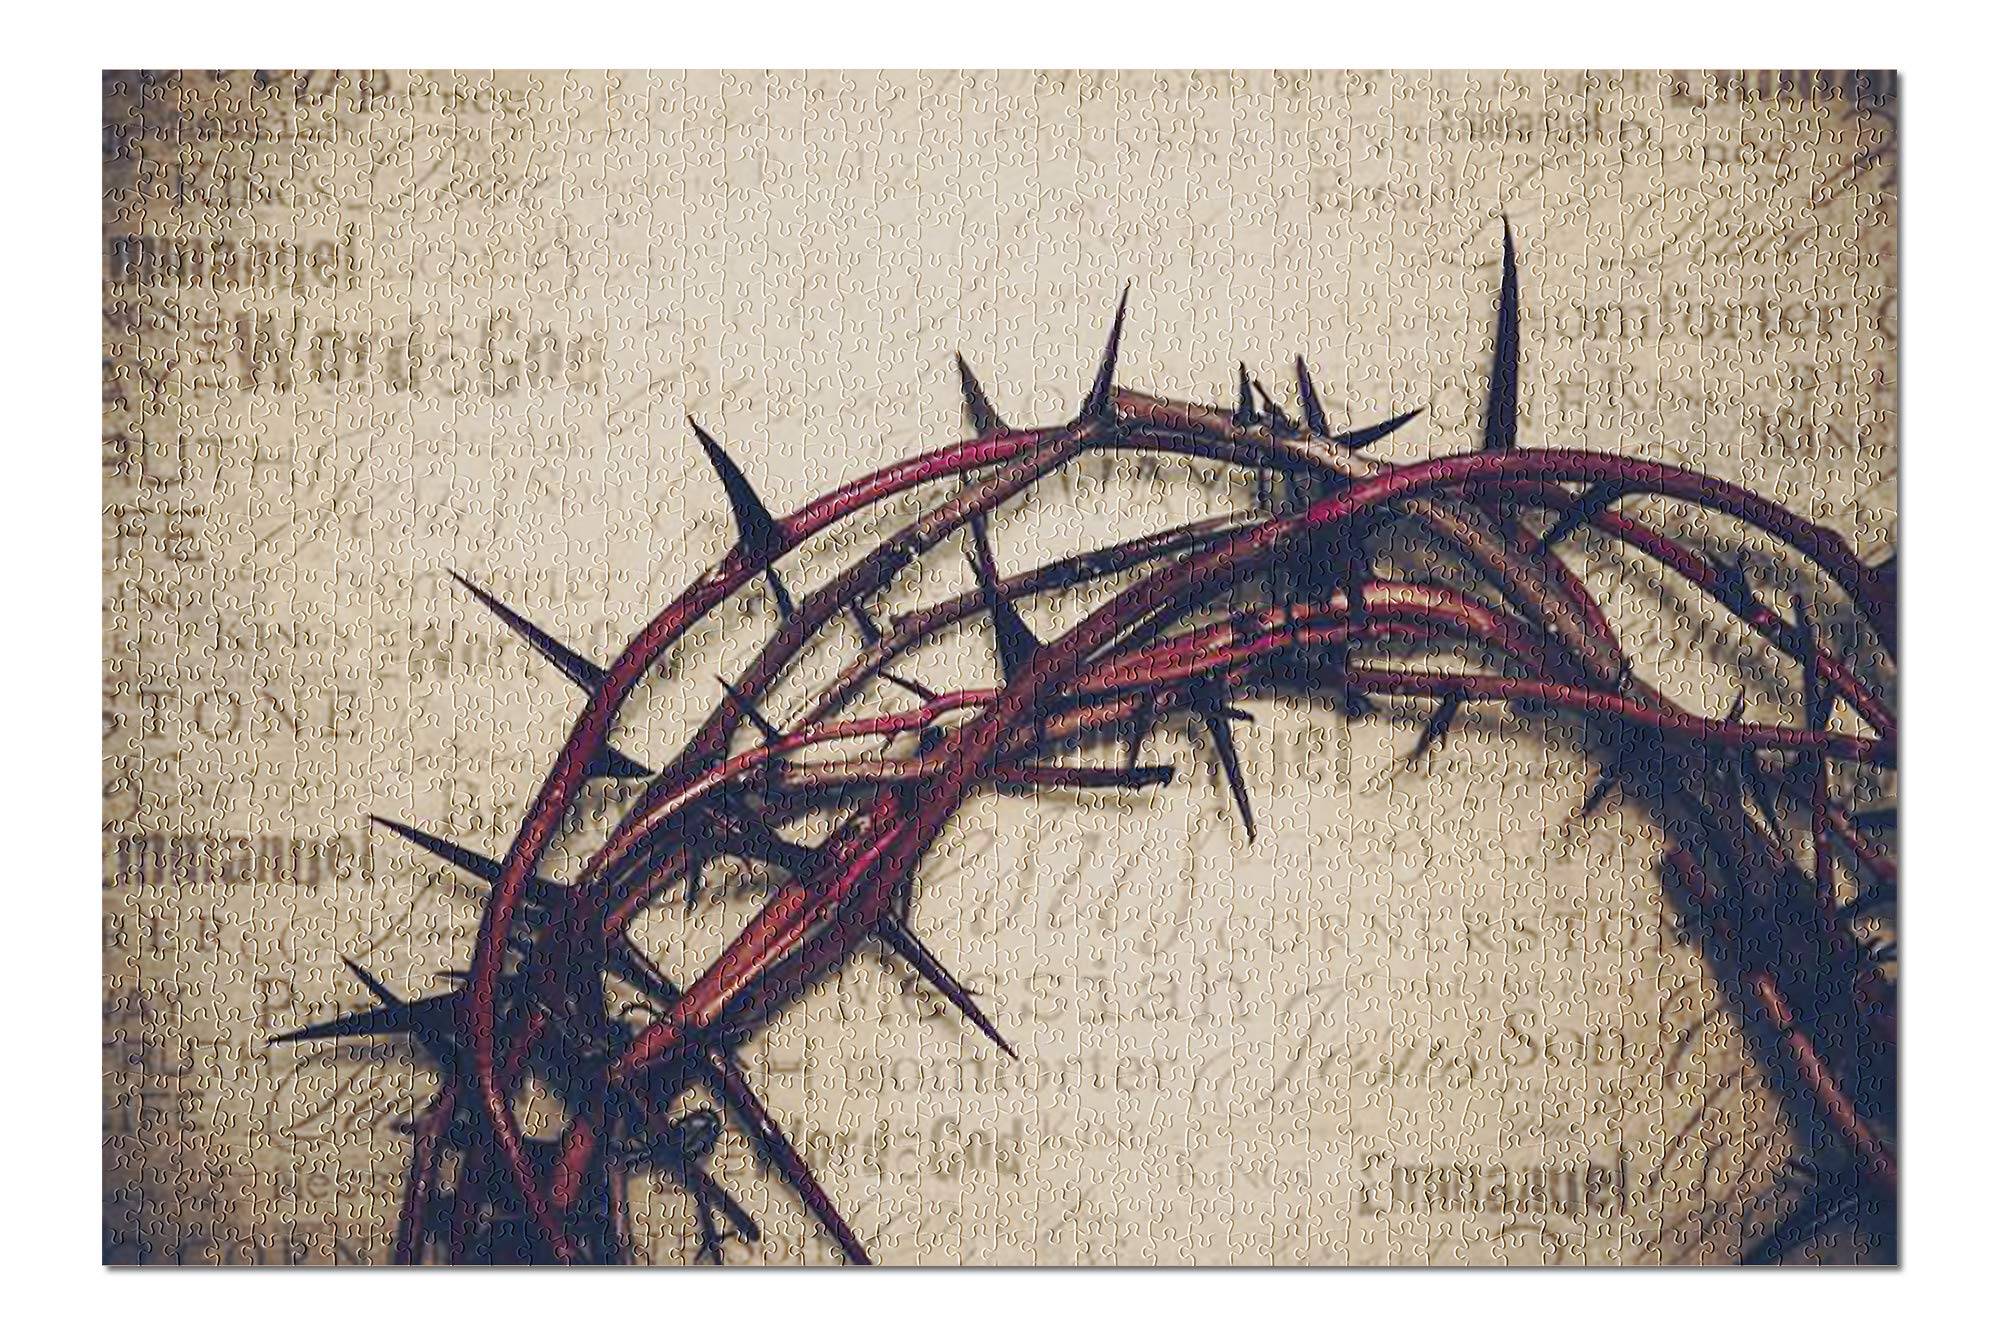 Crown of Thorns with Jesus Names & Attributes on Antique Paper 9012667 (19x27 Premium 1000 Piece Jigsaw Puzzle, Made in USA!)